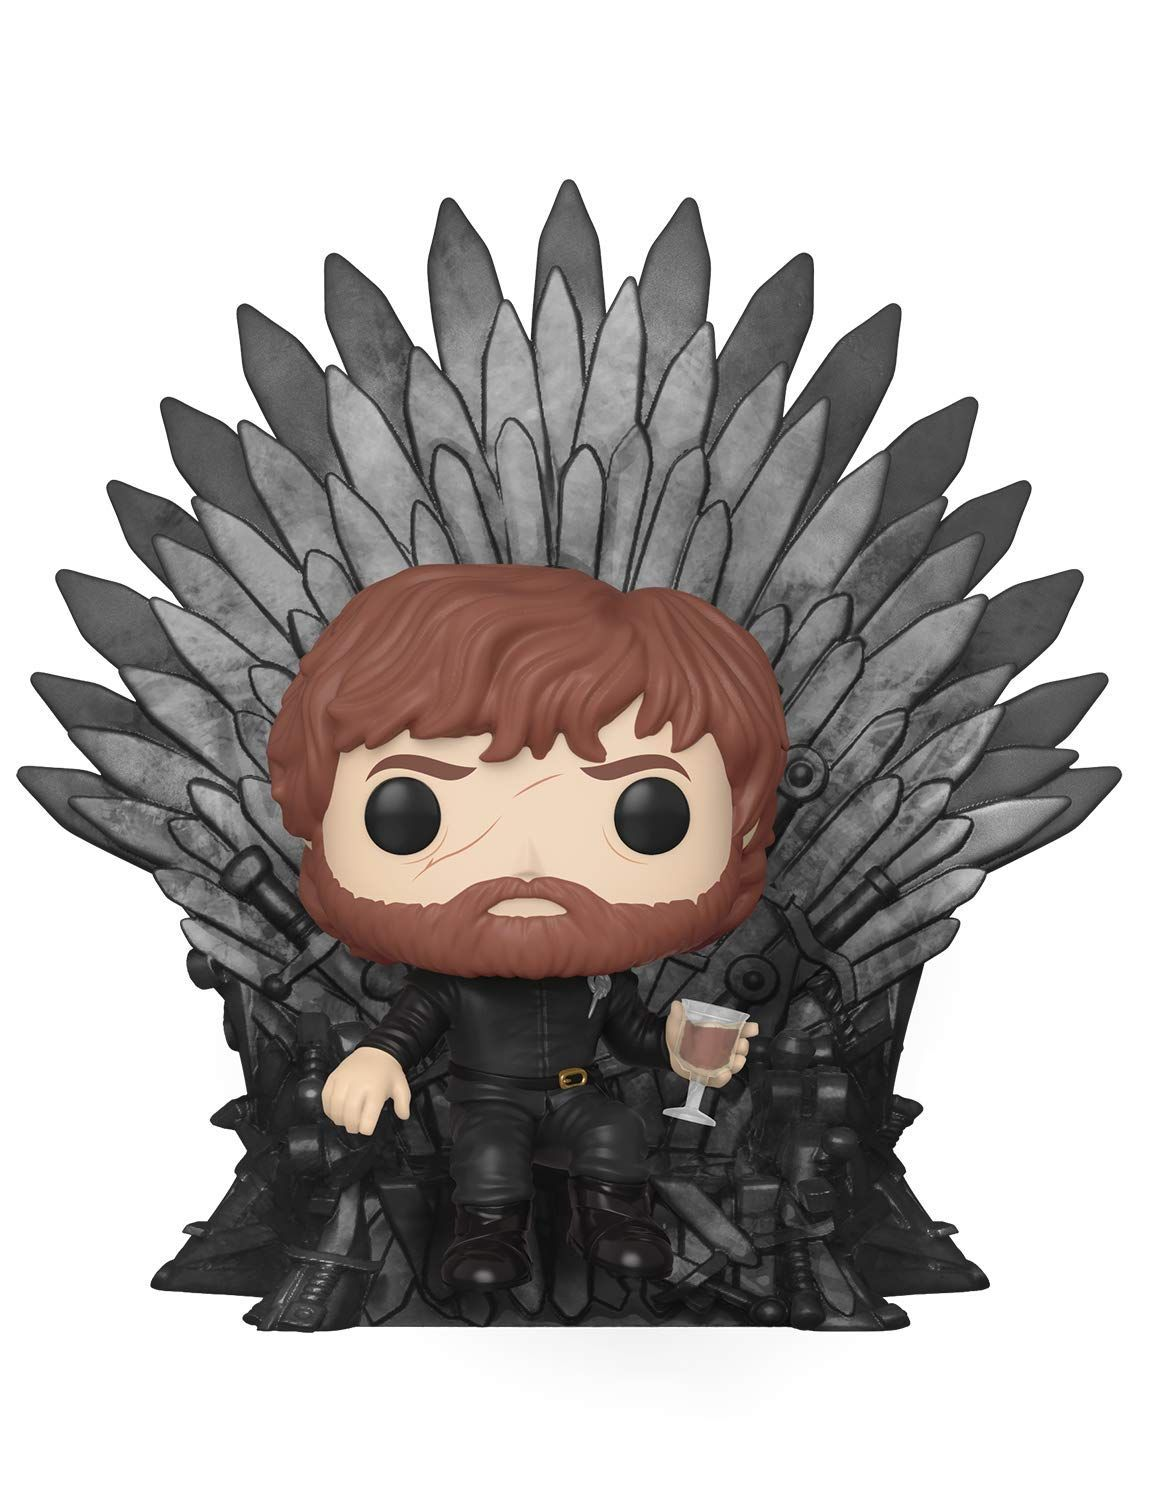 Funko pop deluxe game of thrones tyrion sitting on